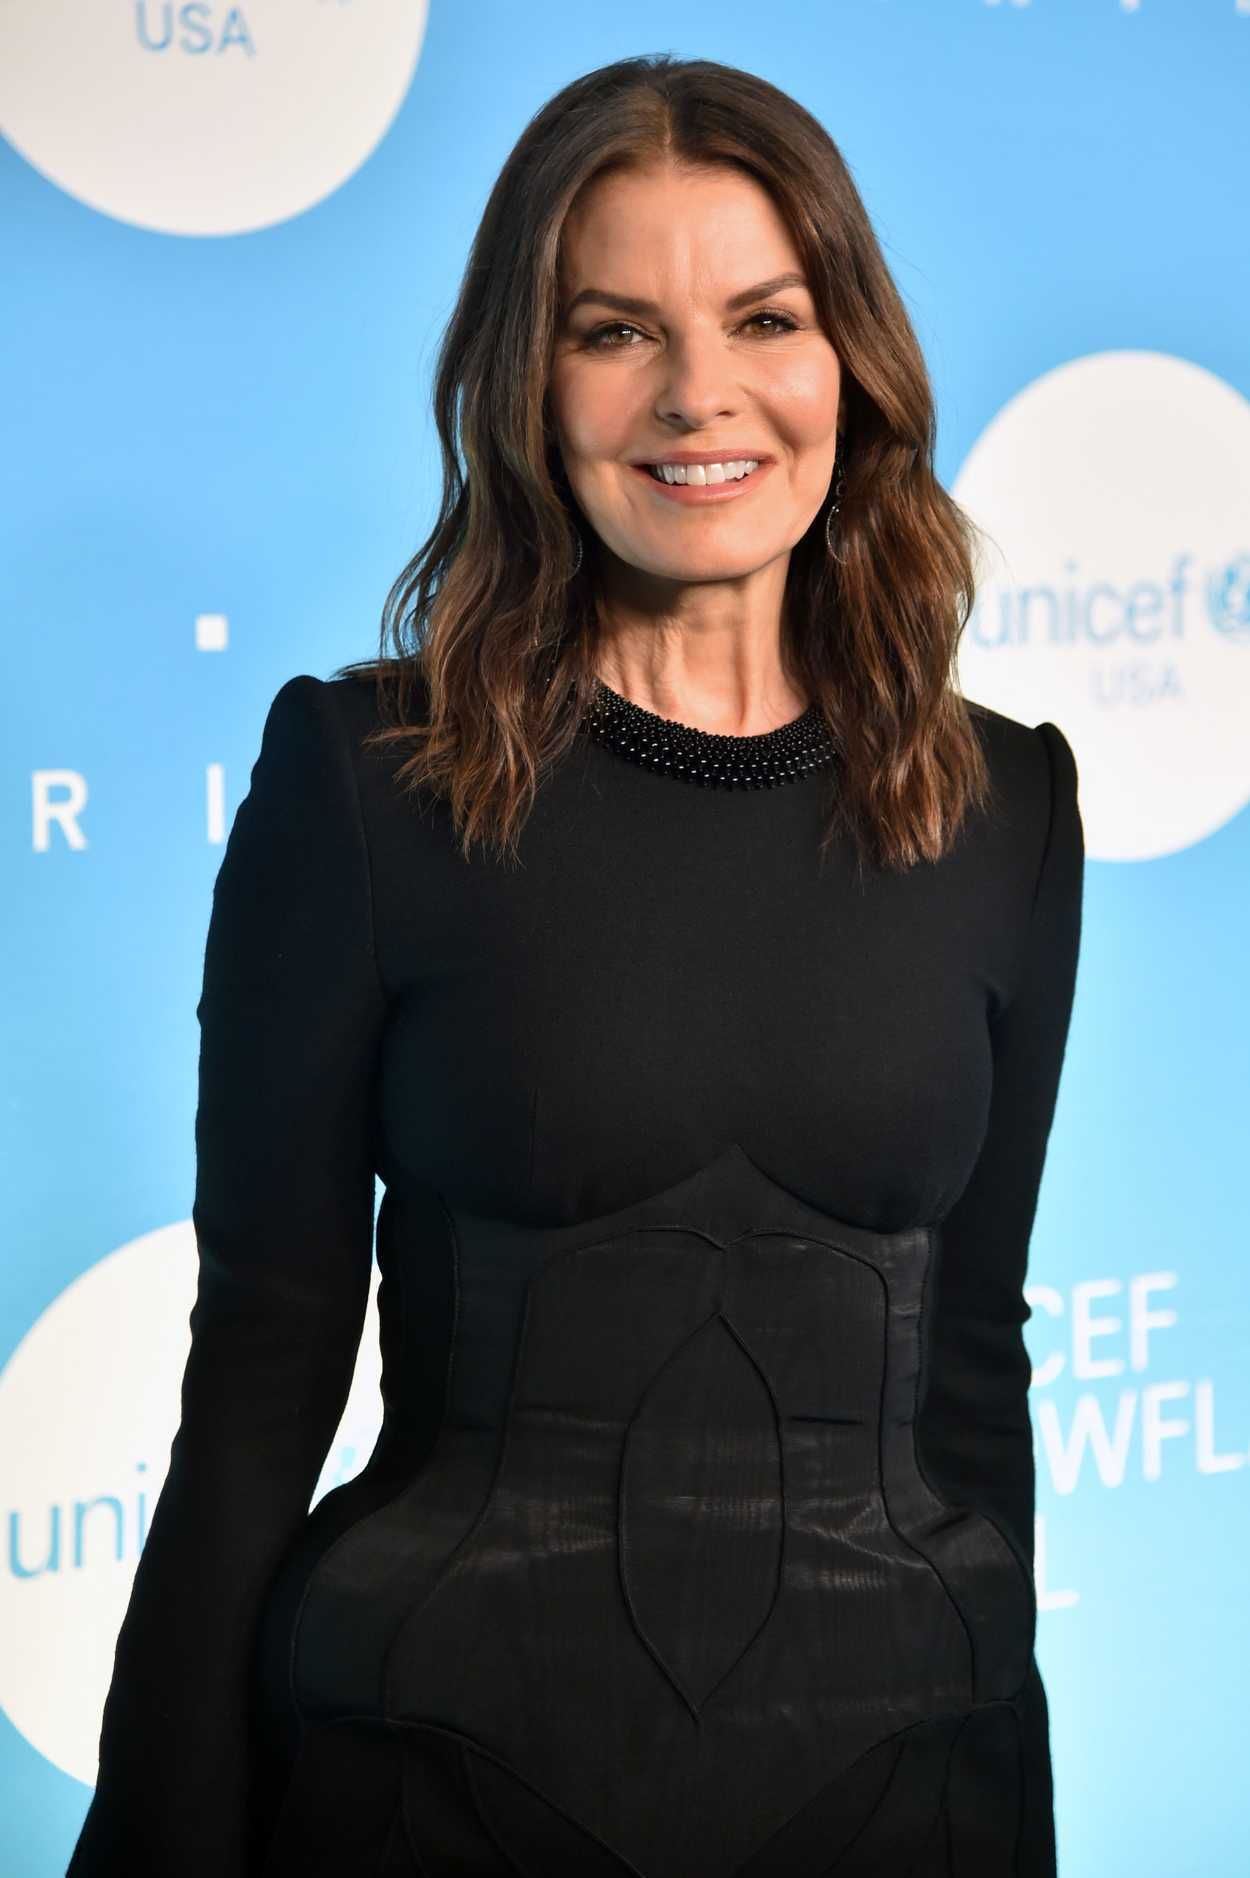 Sela Ward Attends The 14th Annual Unicef Snowflake Ball In